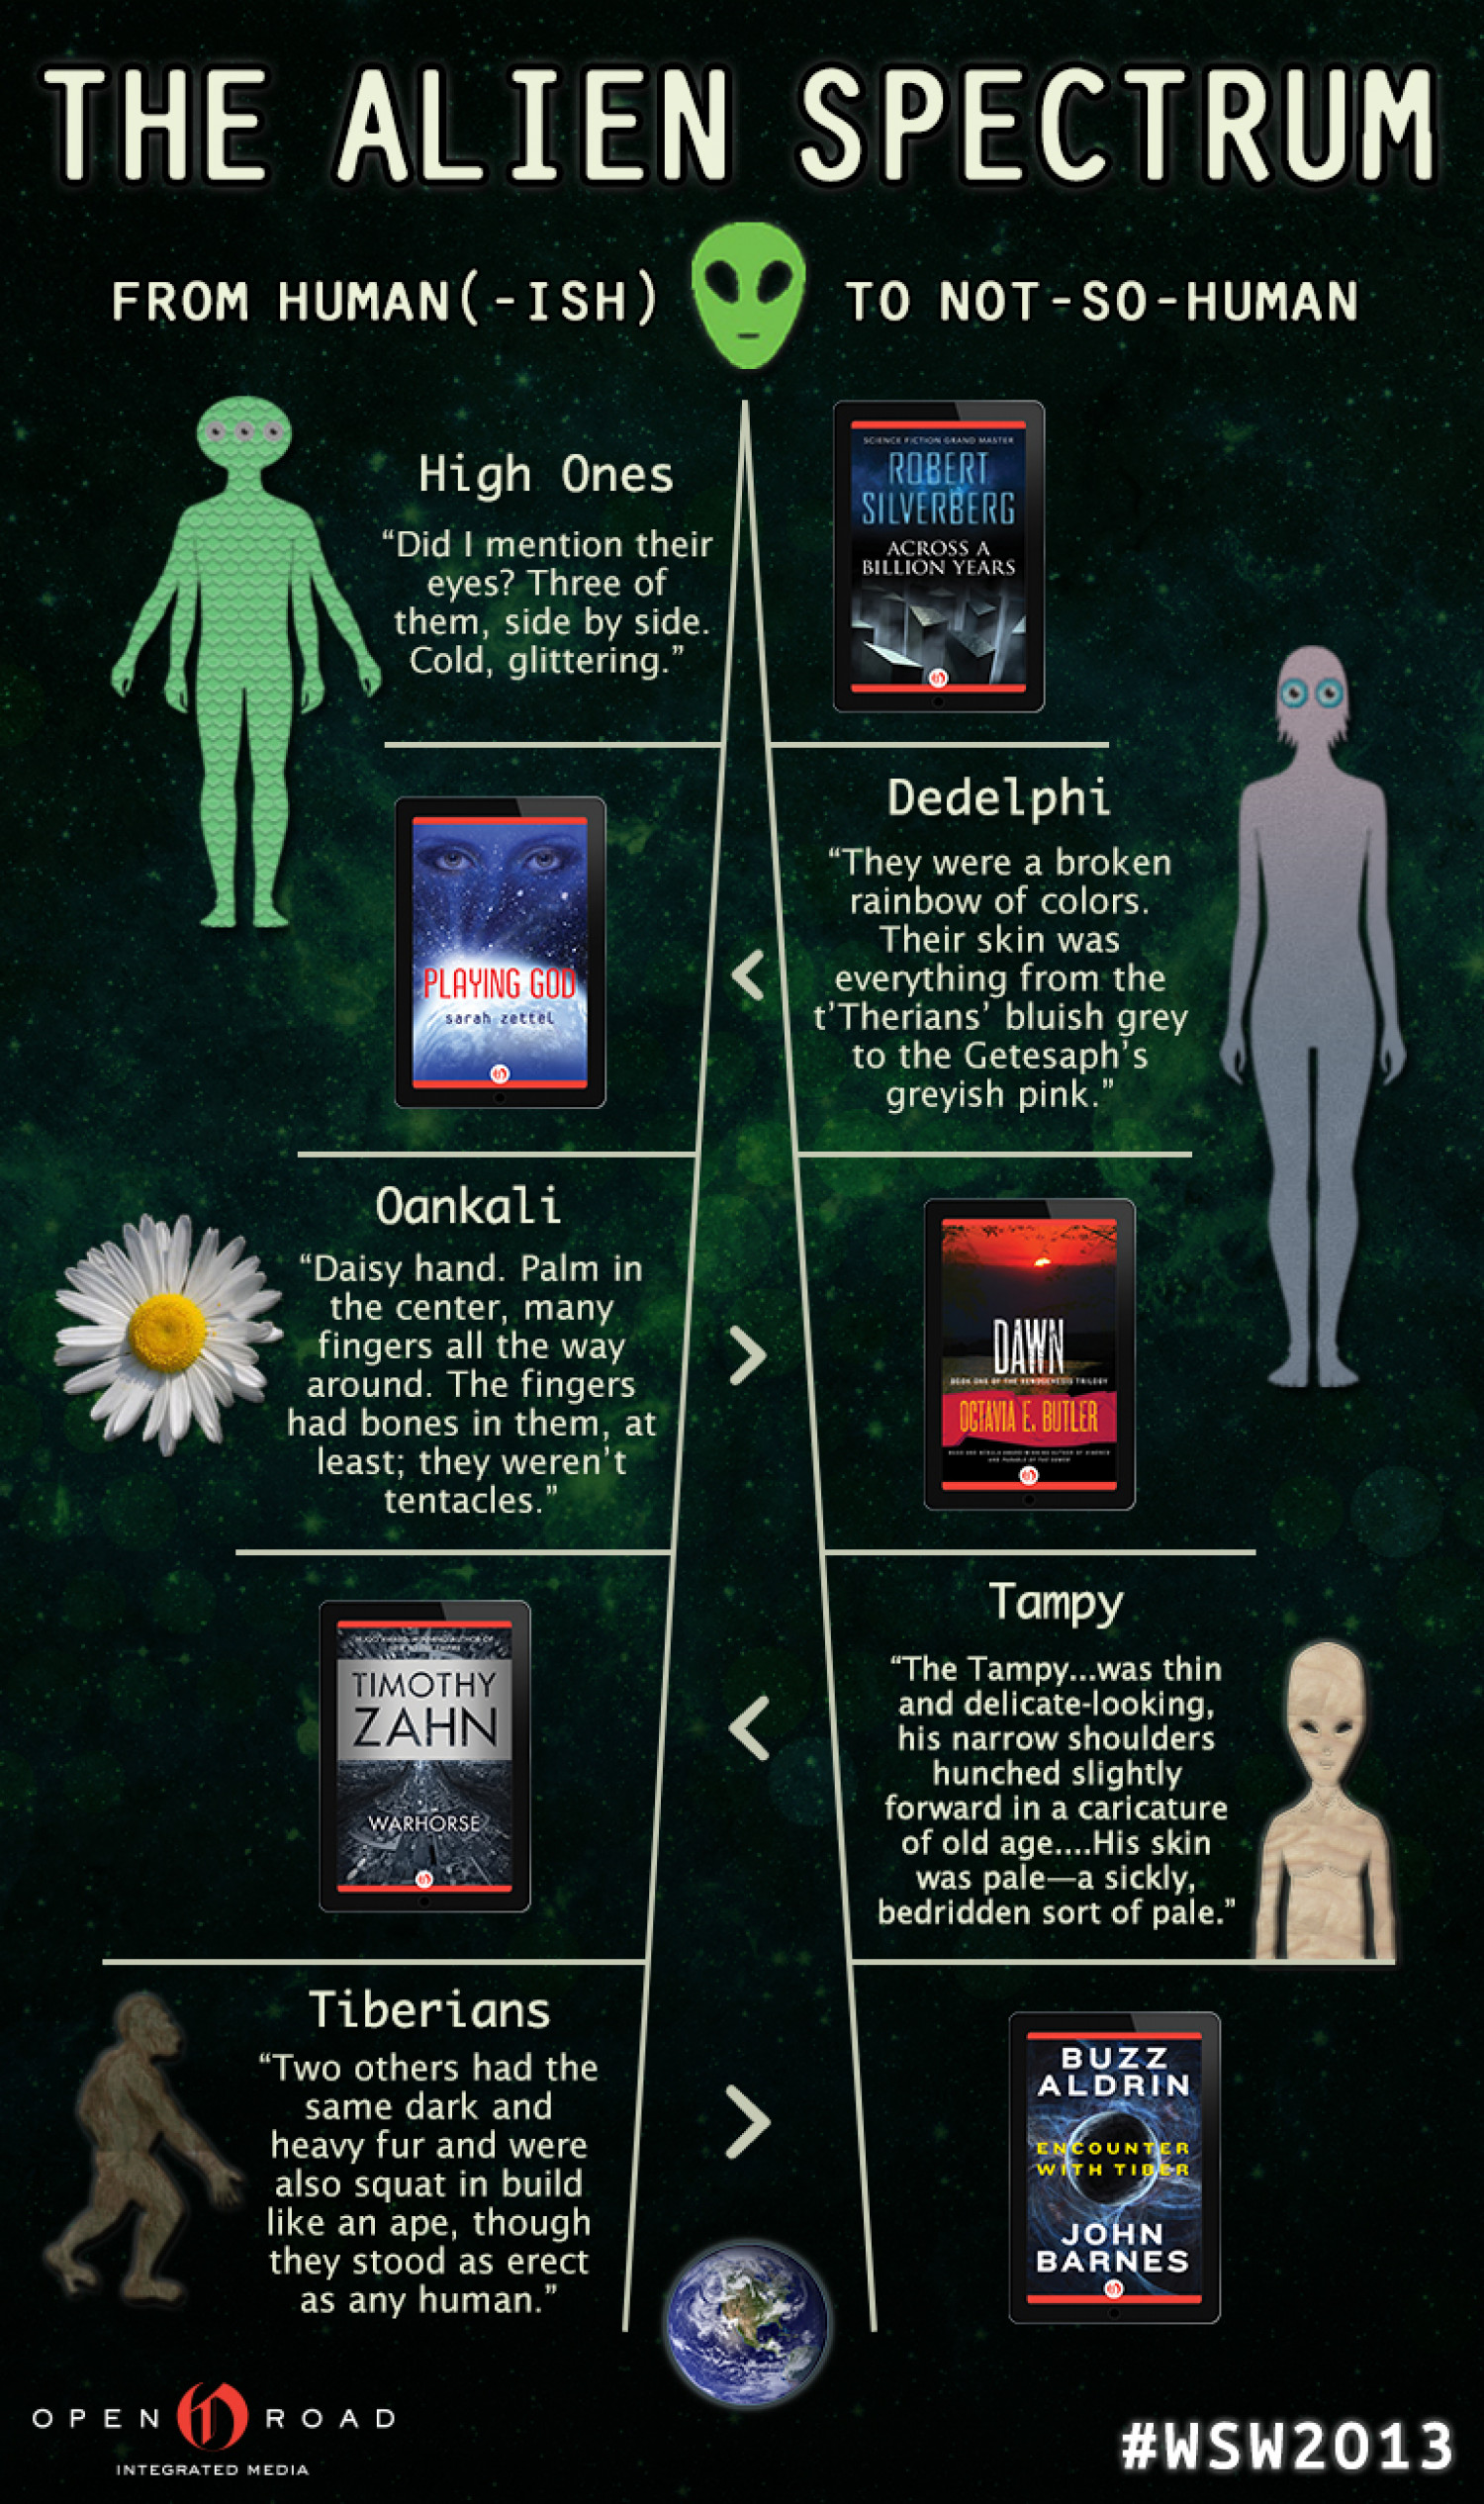 The Alien Spectrum: Is Anyone Out There? Infographic